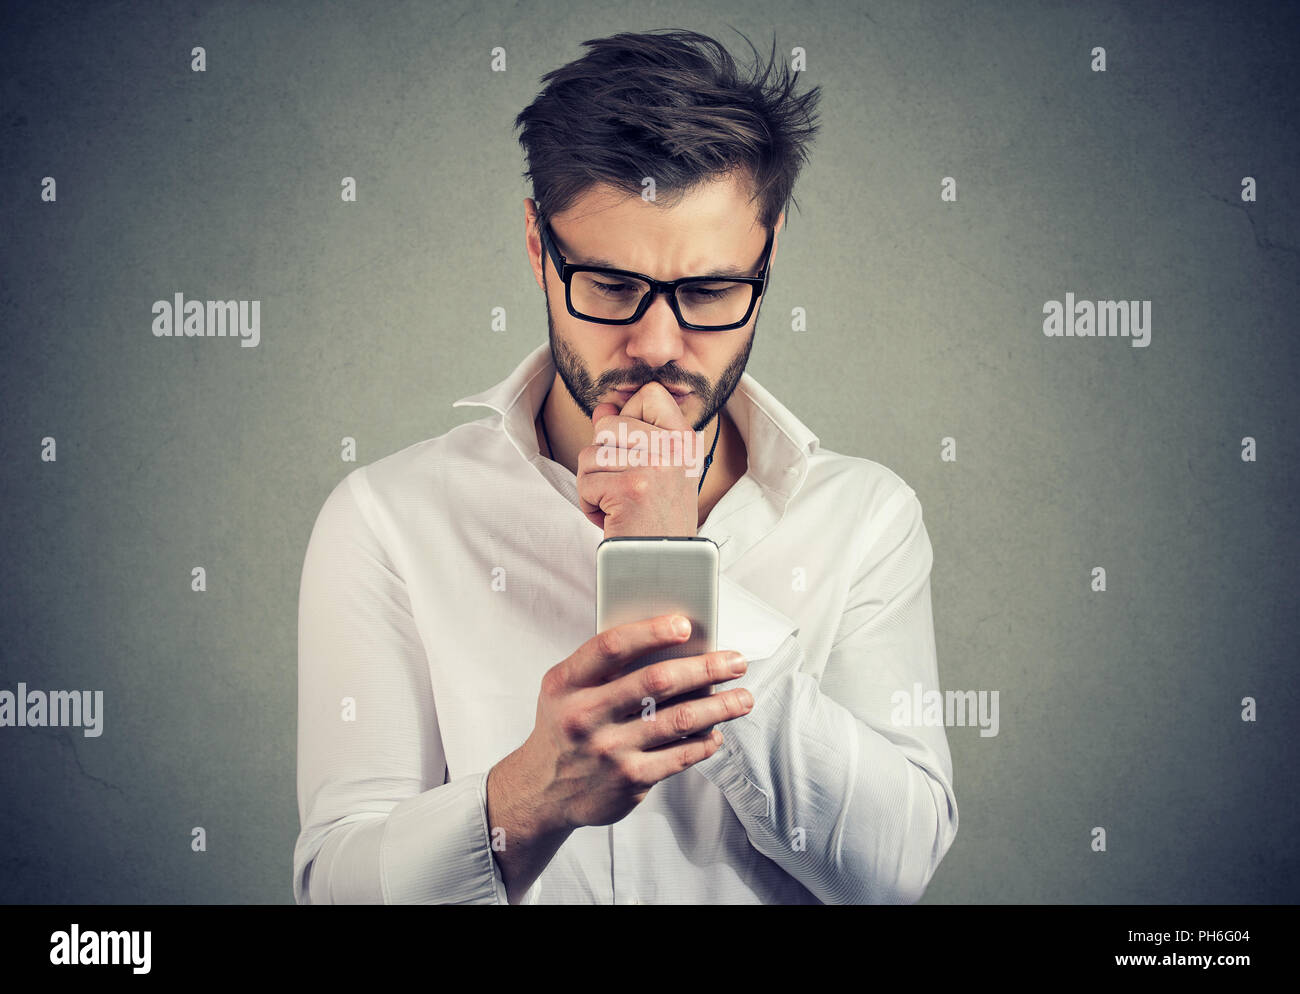 Clueless young man having troubles with his smartphone looking preoccupied - Stock Image